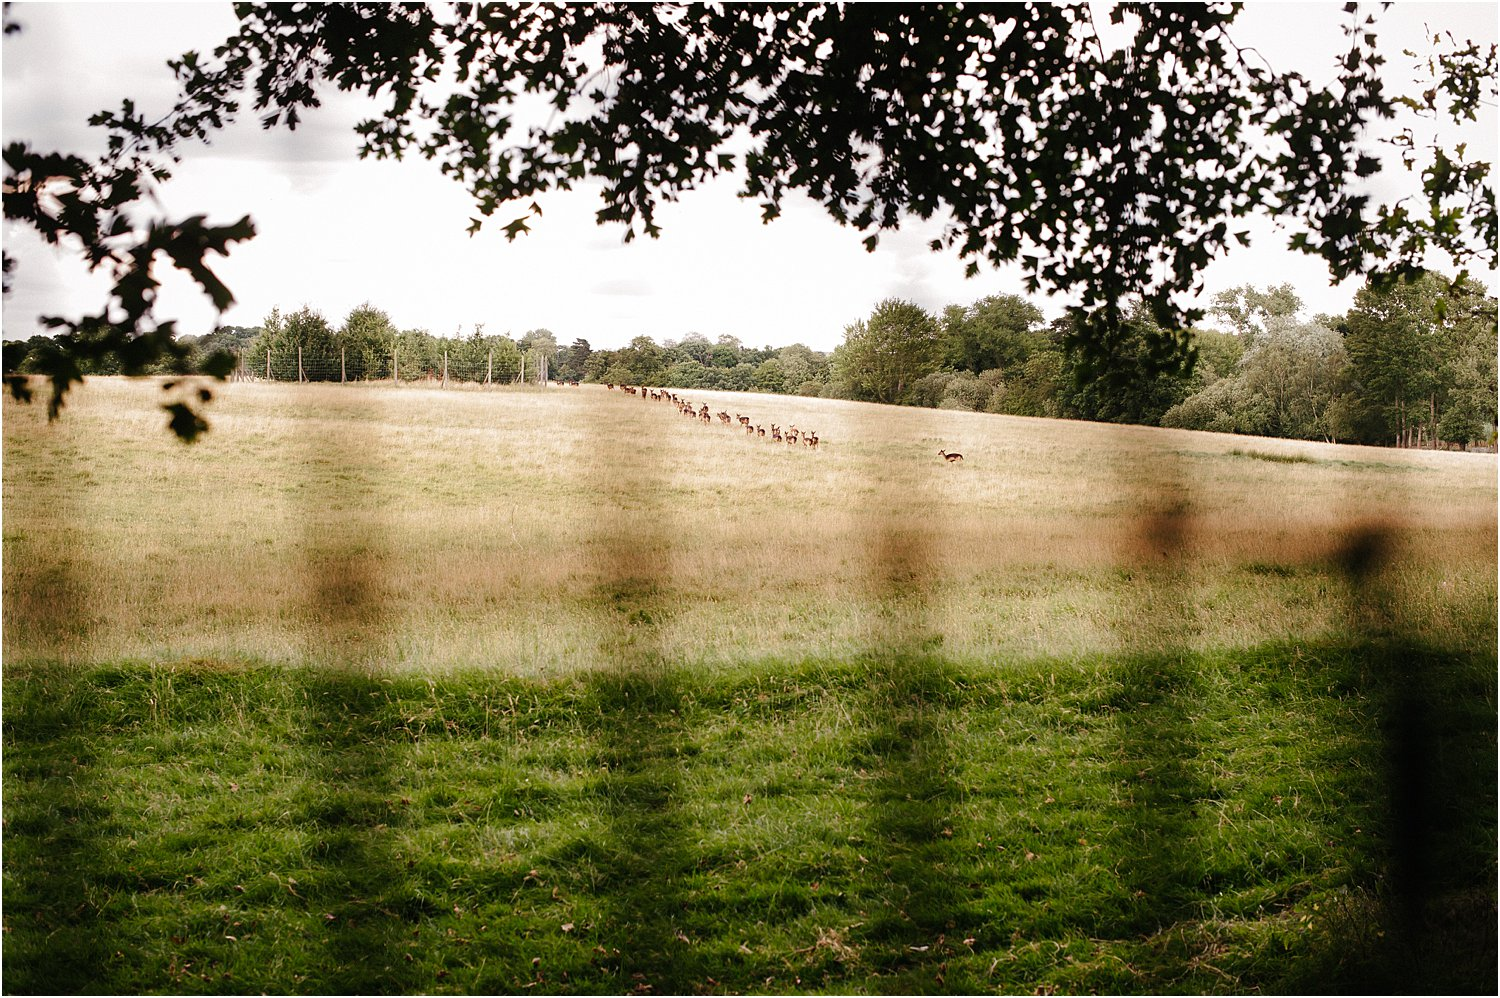 Photo by Lily Sawyer – A picture of a field taken through a wire fence.